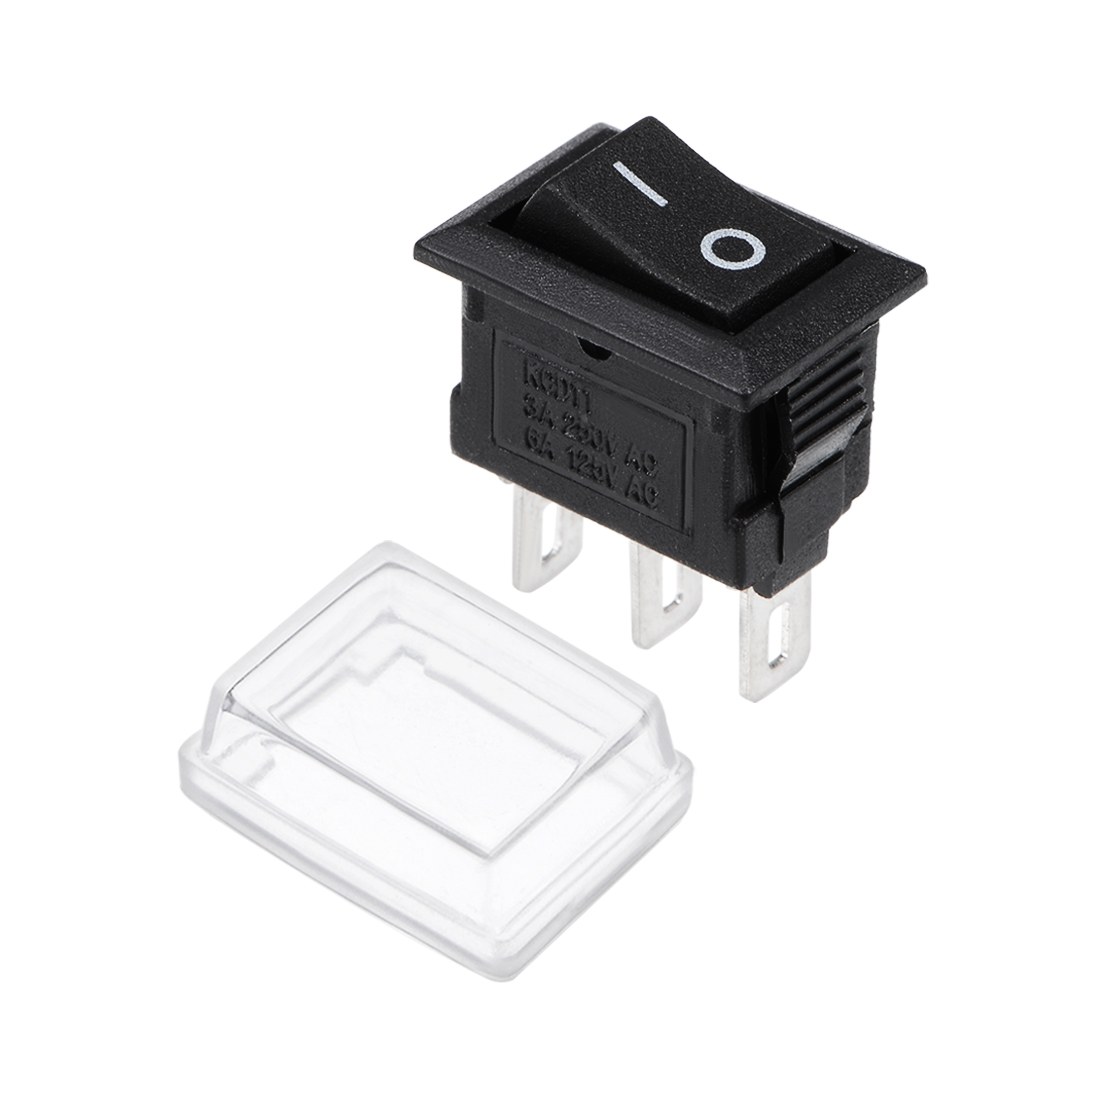 uxcell 20 pcs x Red Button 2 Pole SPST ON-OFF Mini Boat Rocker Switch 10A//125V 6A//250V AC